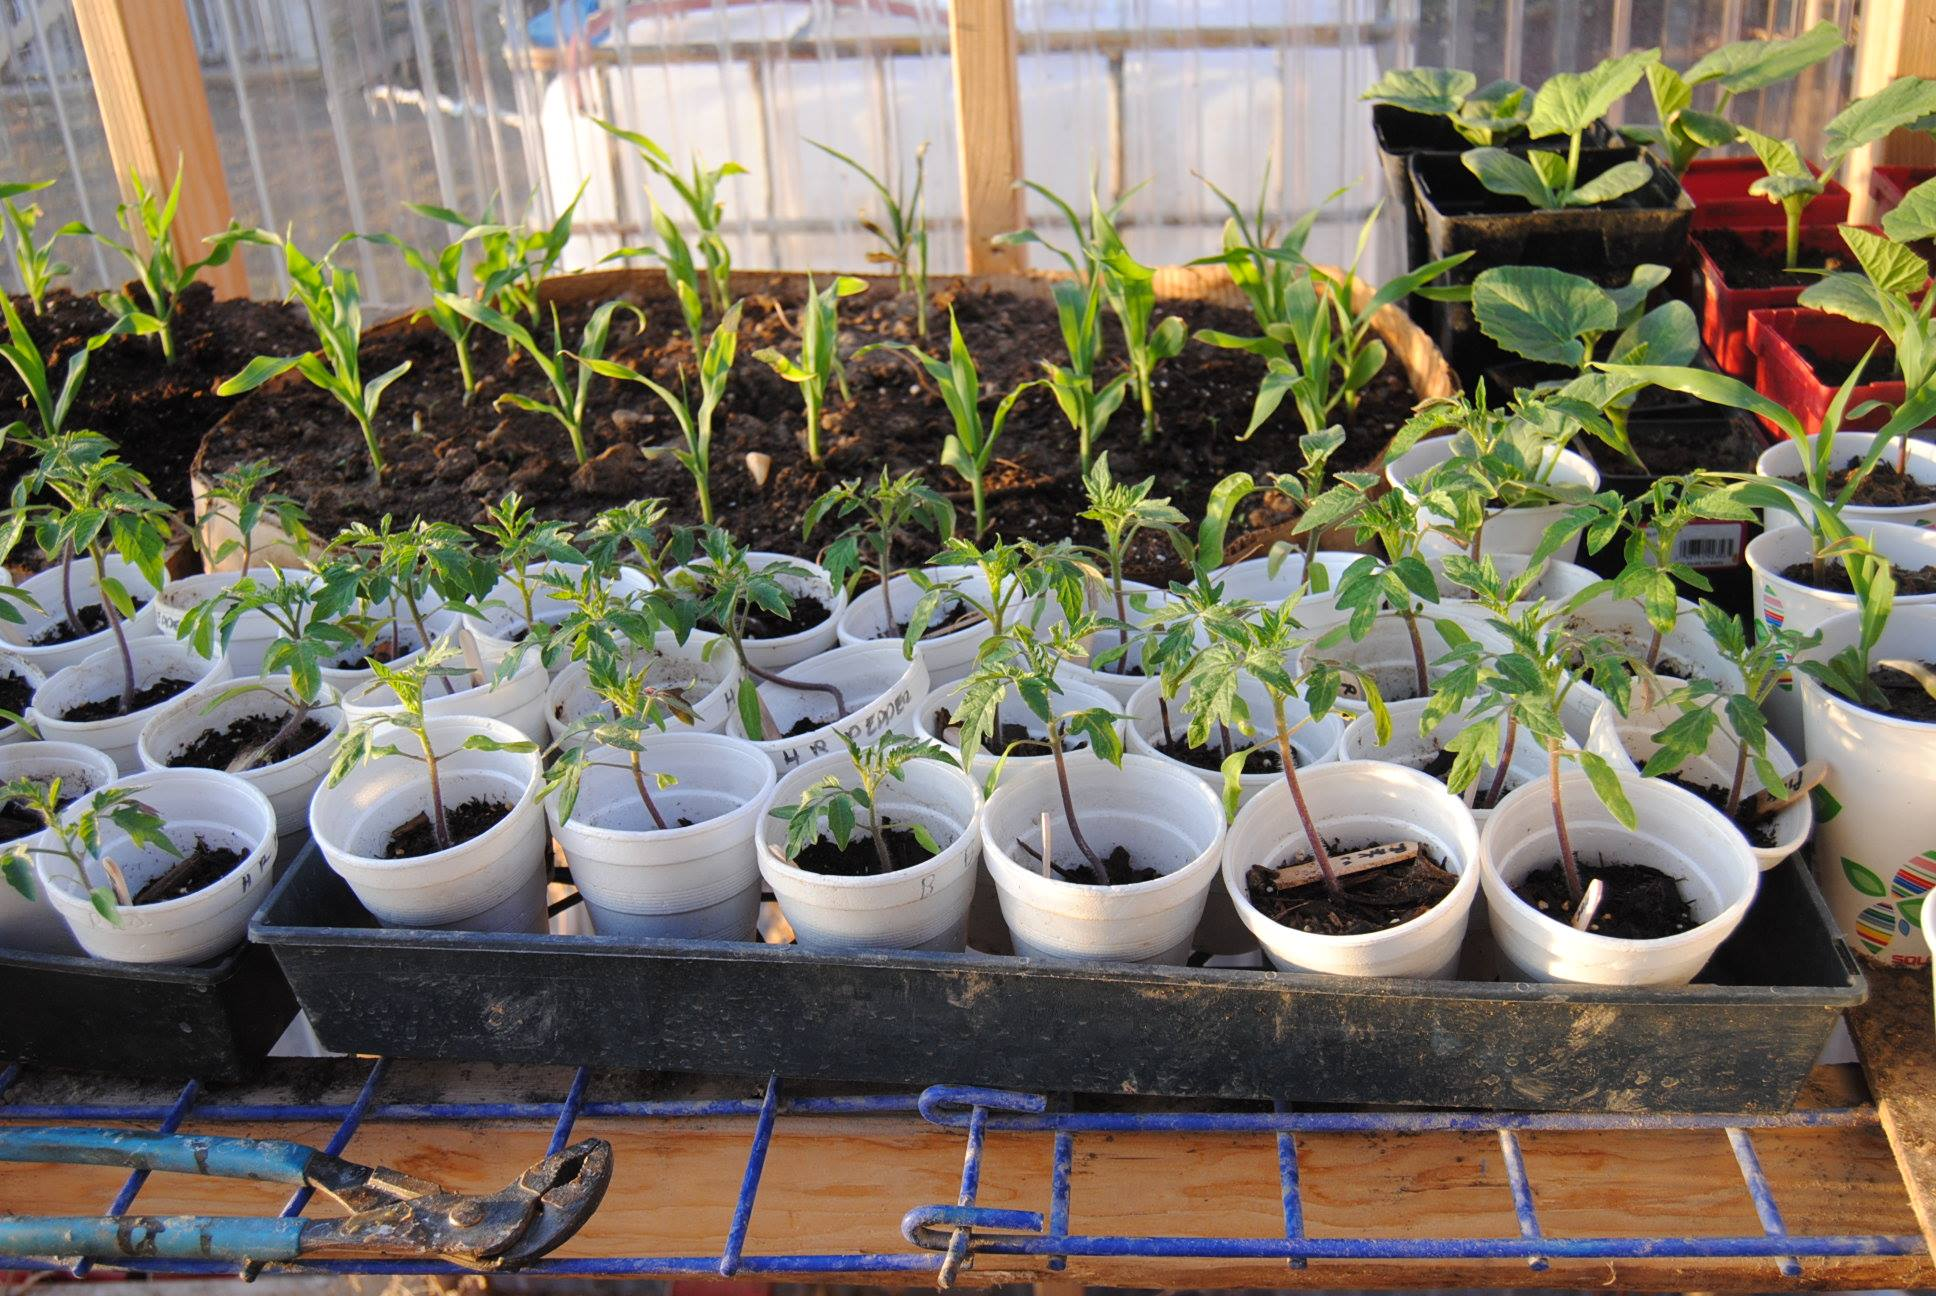 greenhouse gardening plants seedligns